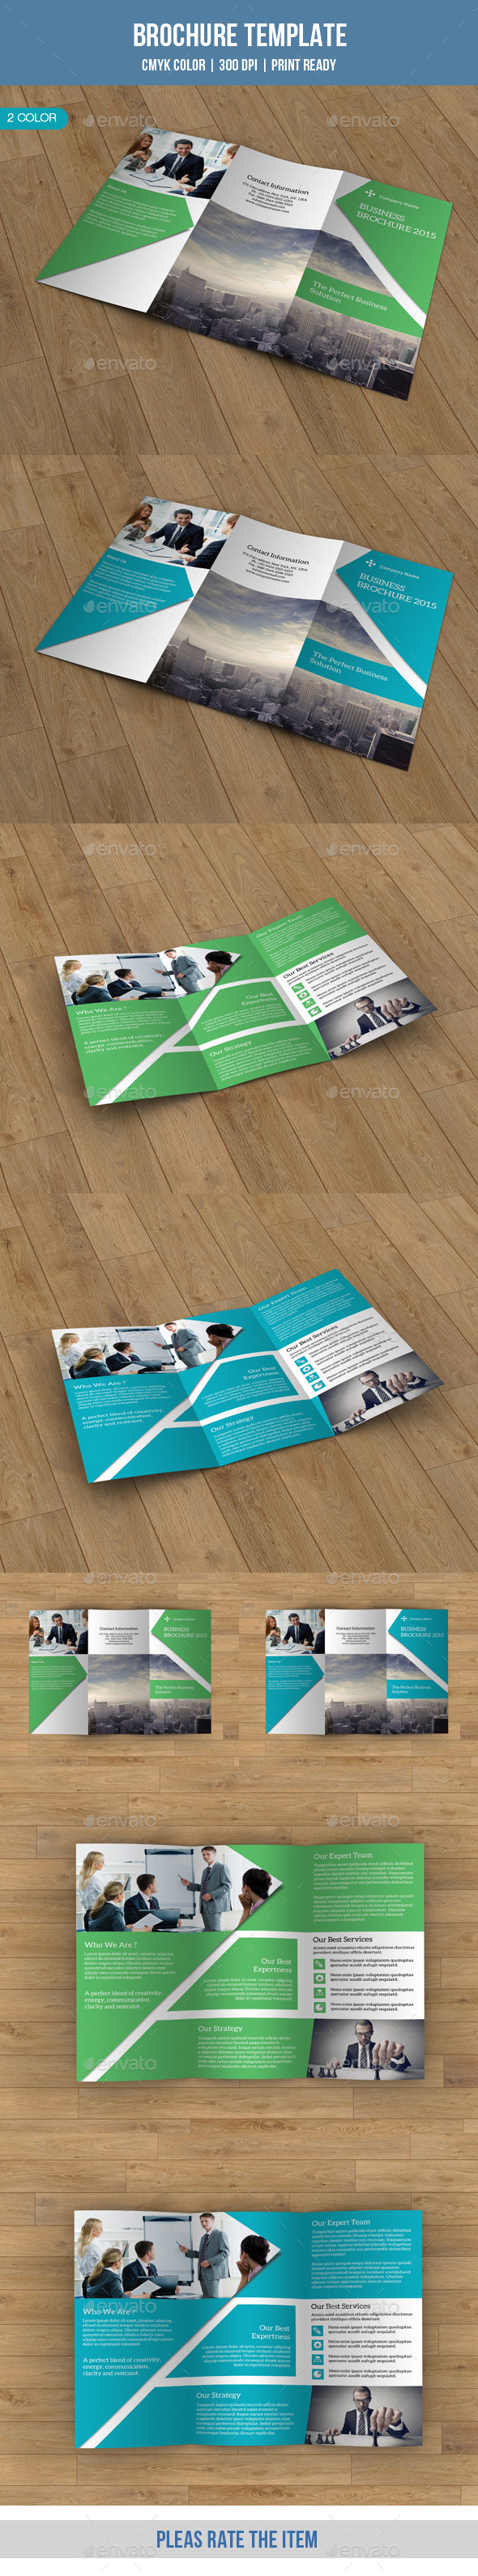 Trifold Brochure for Business-V80 - Corporate Brochures